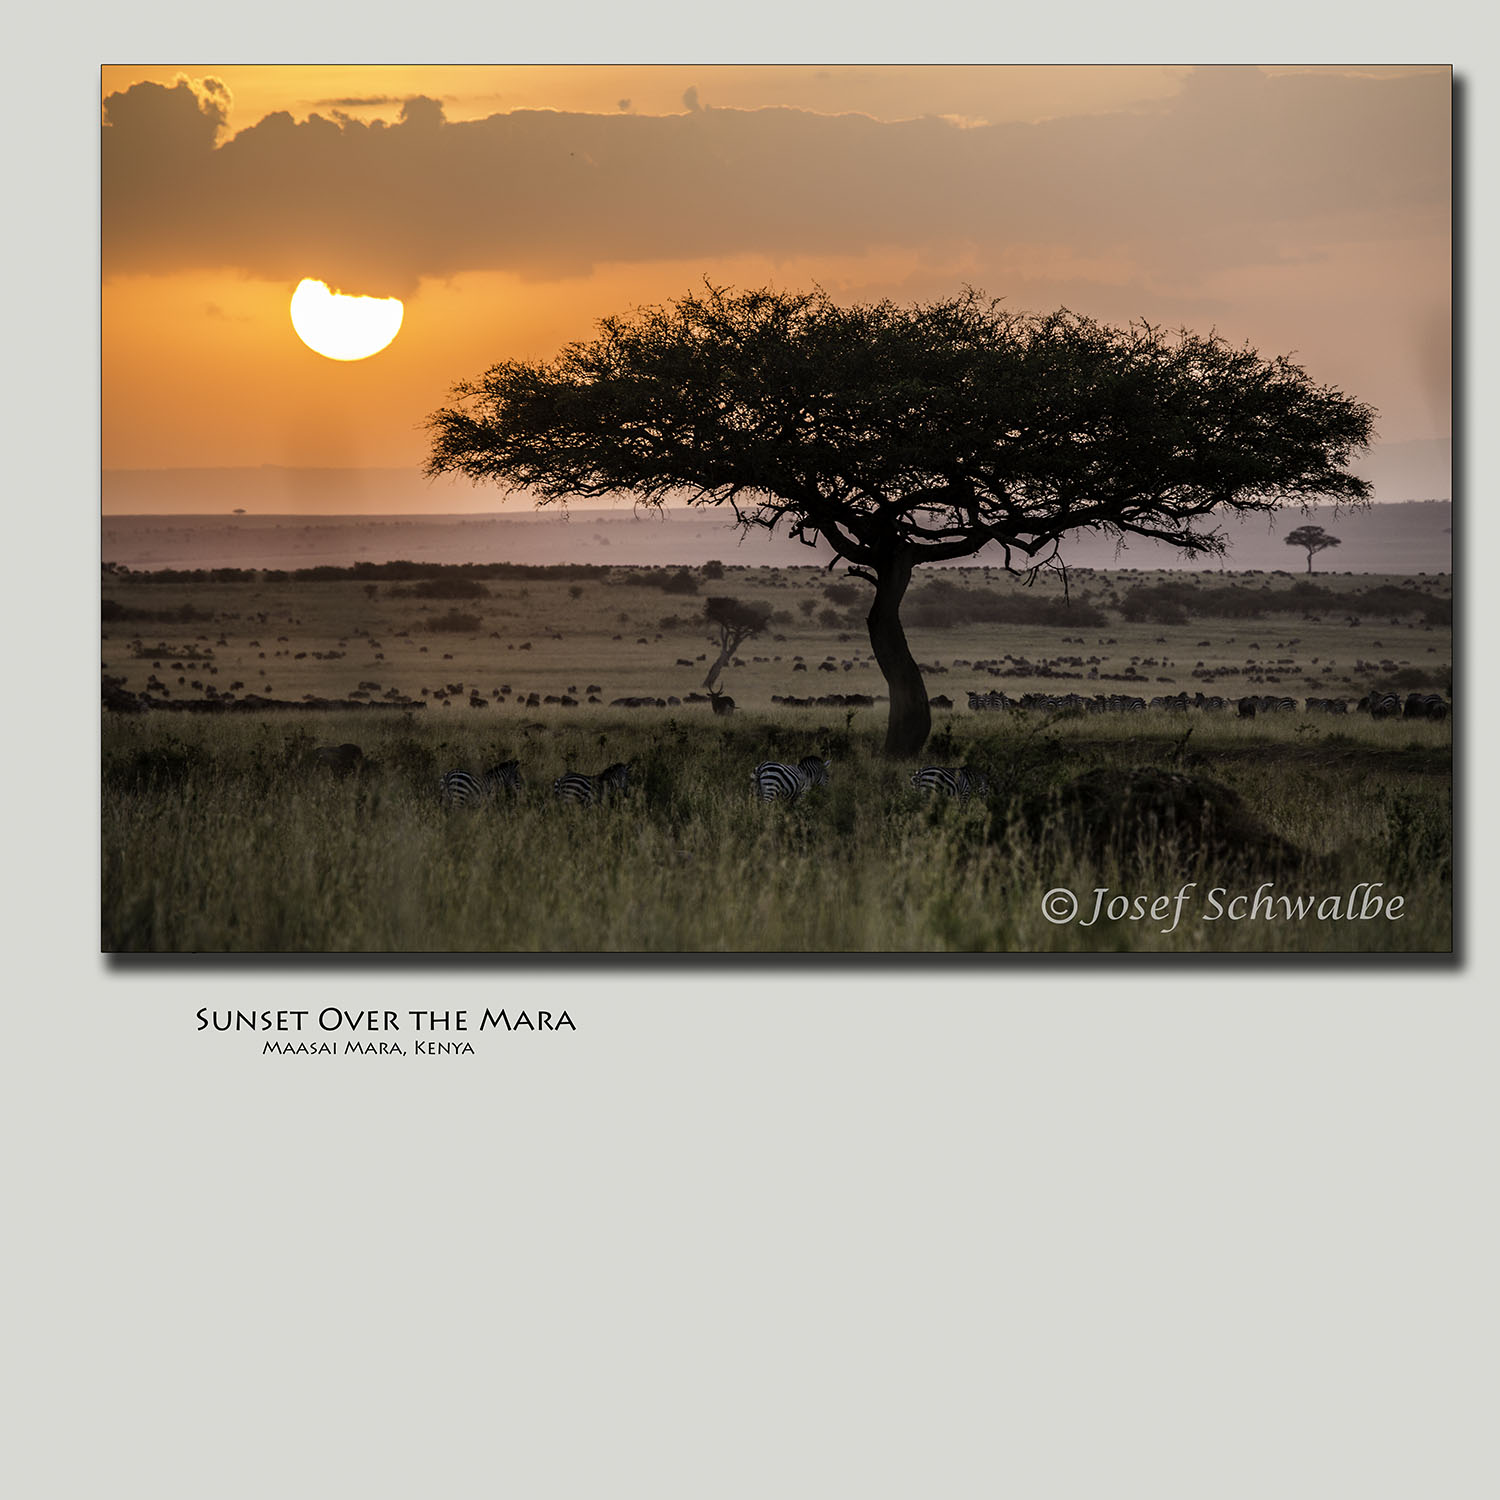 Sunset Over the Mara